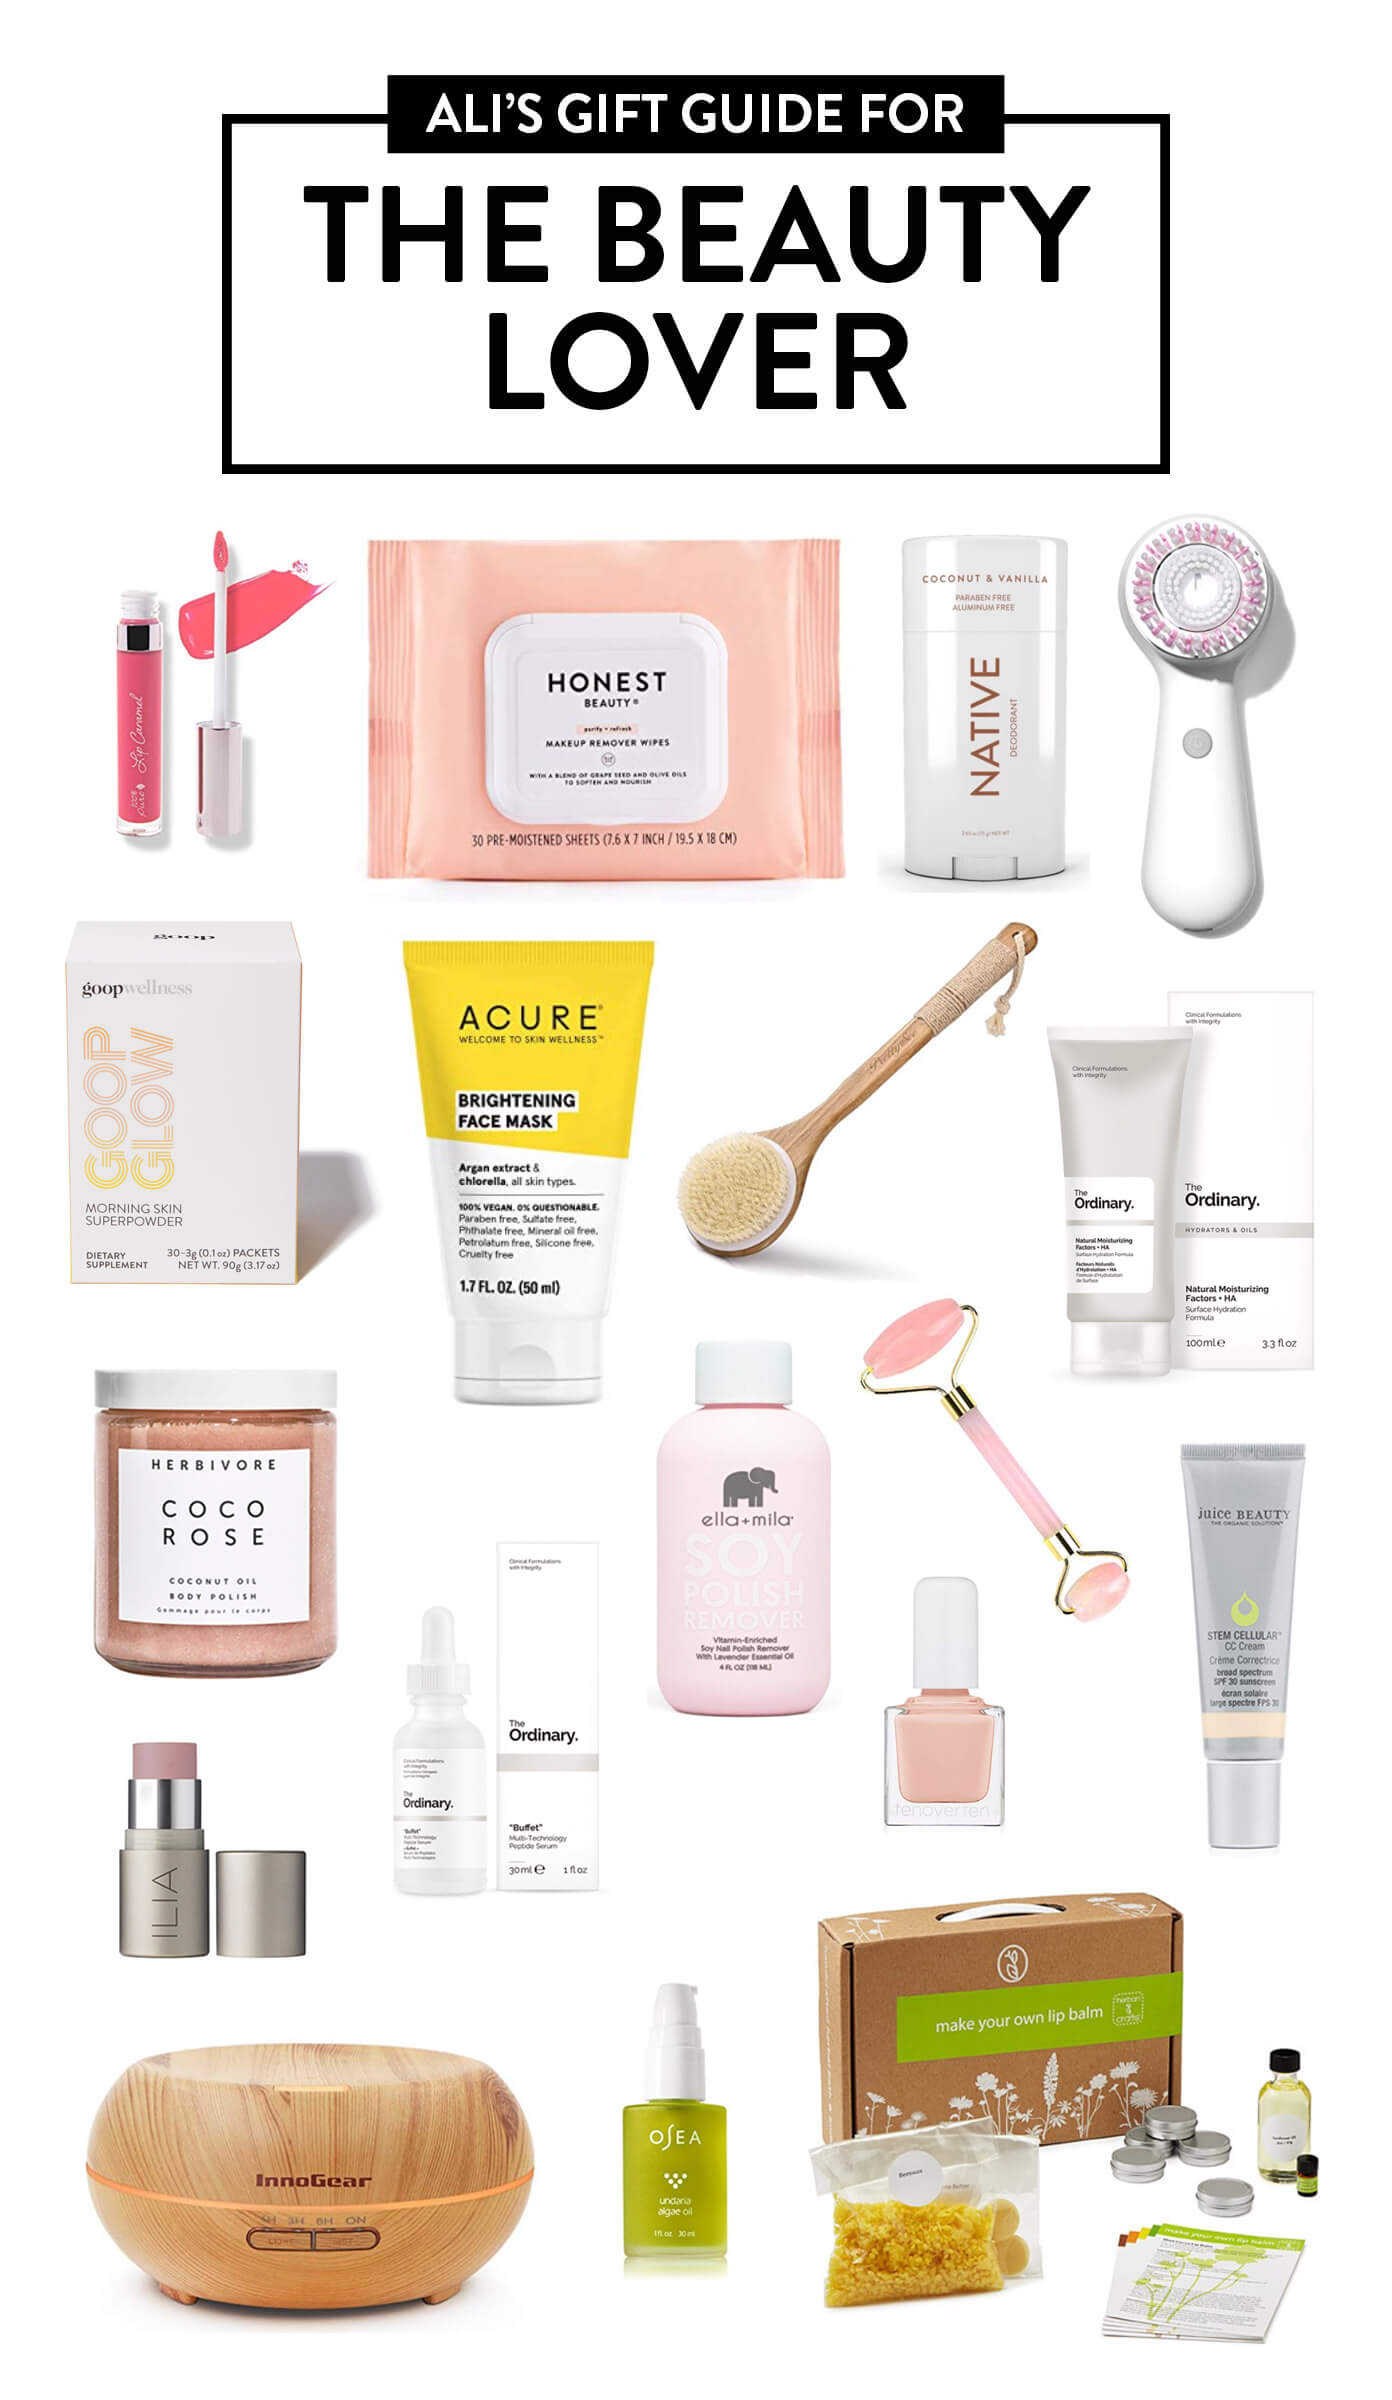 2018 Gimme Some Oven Holiday Gift Guide: The Beauty Lover